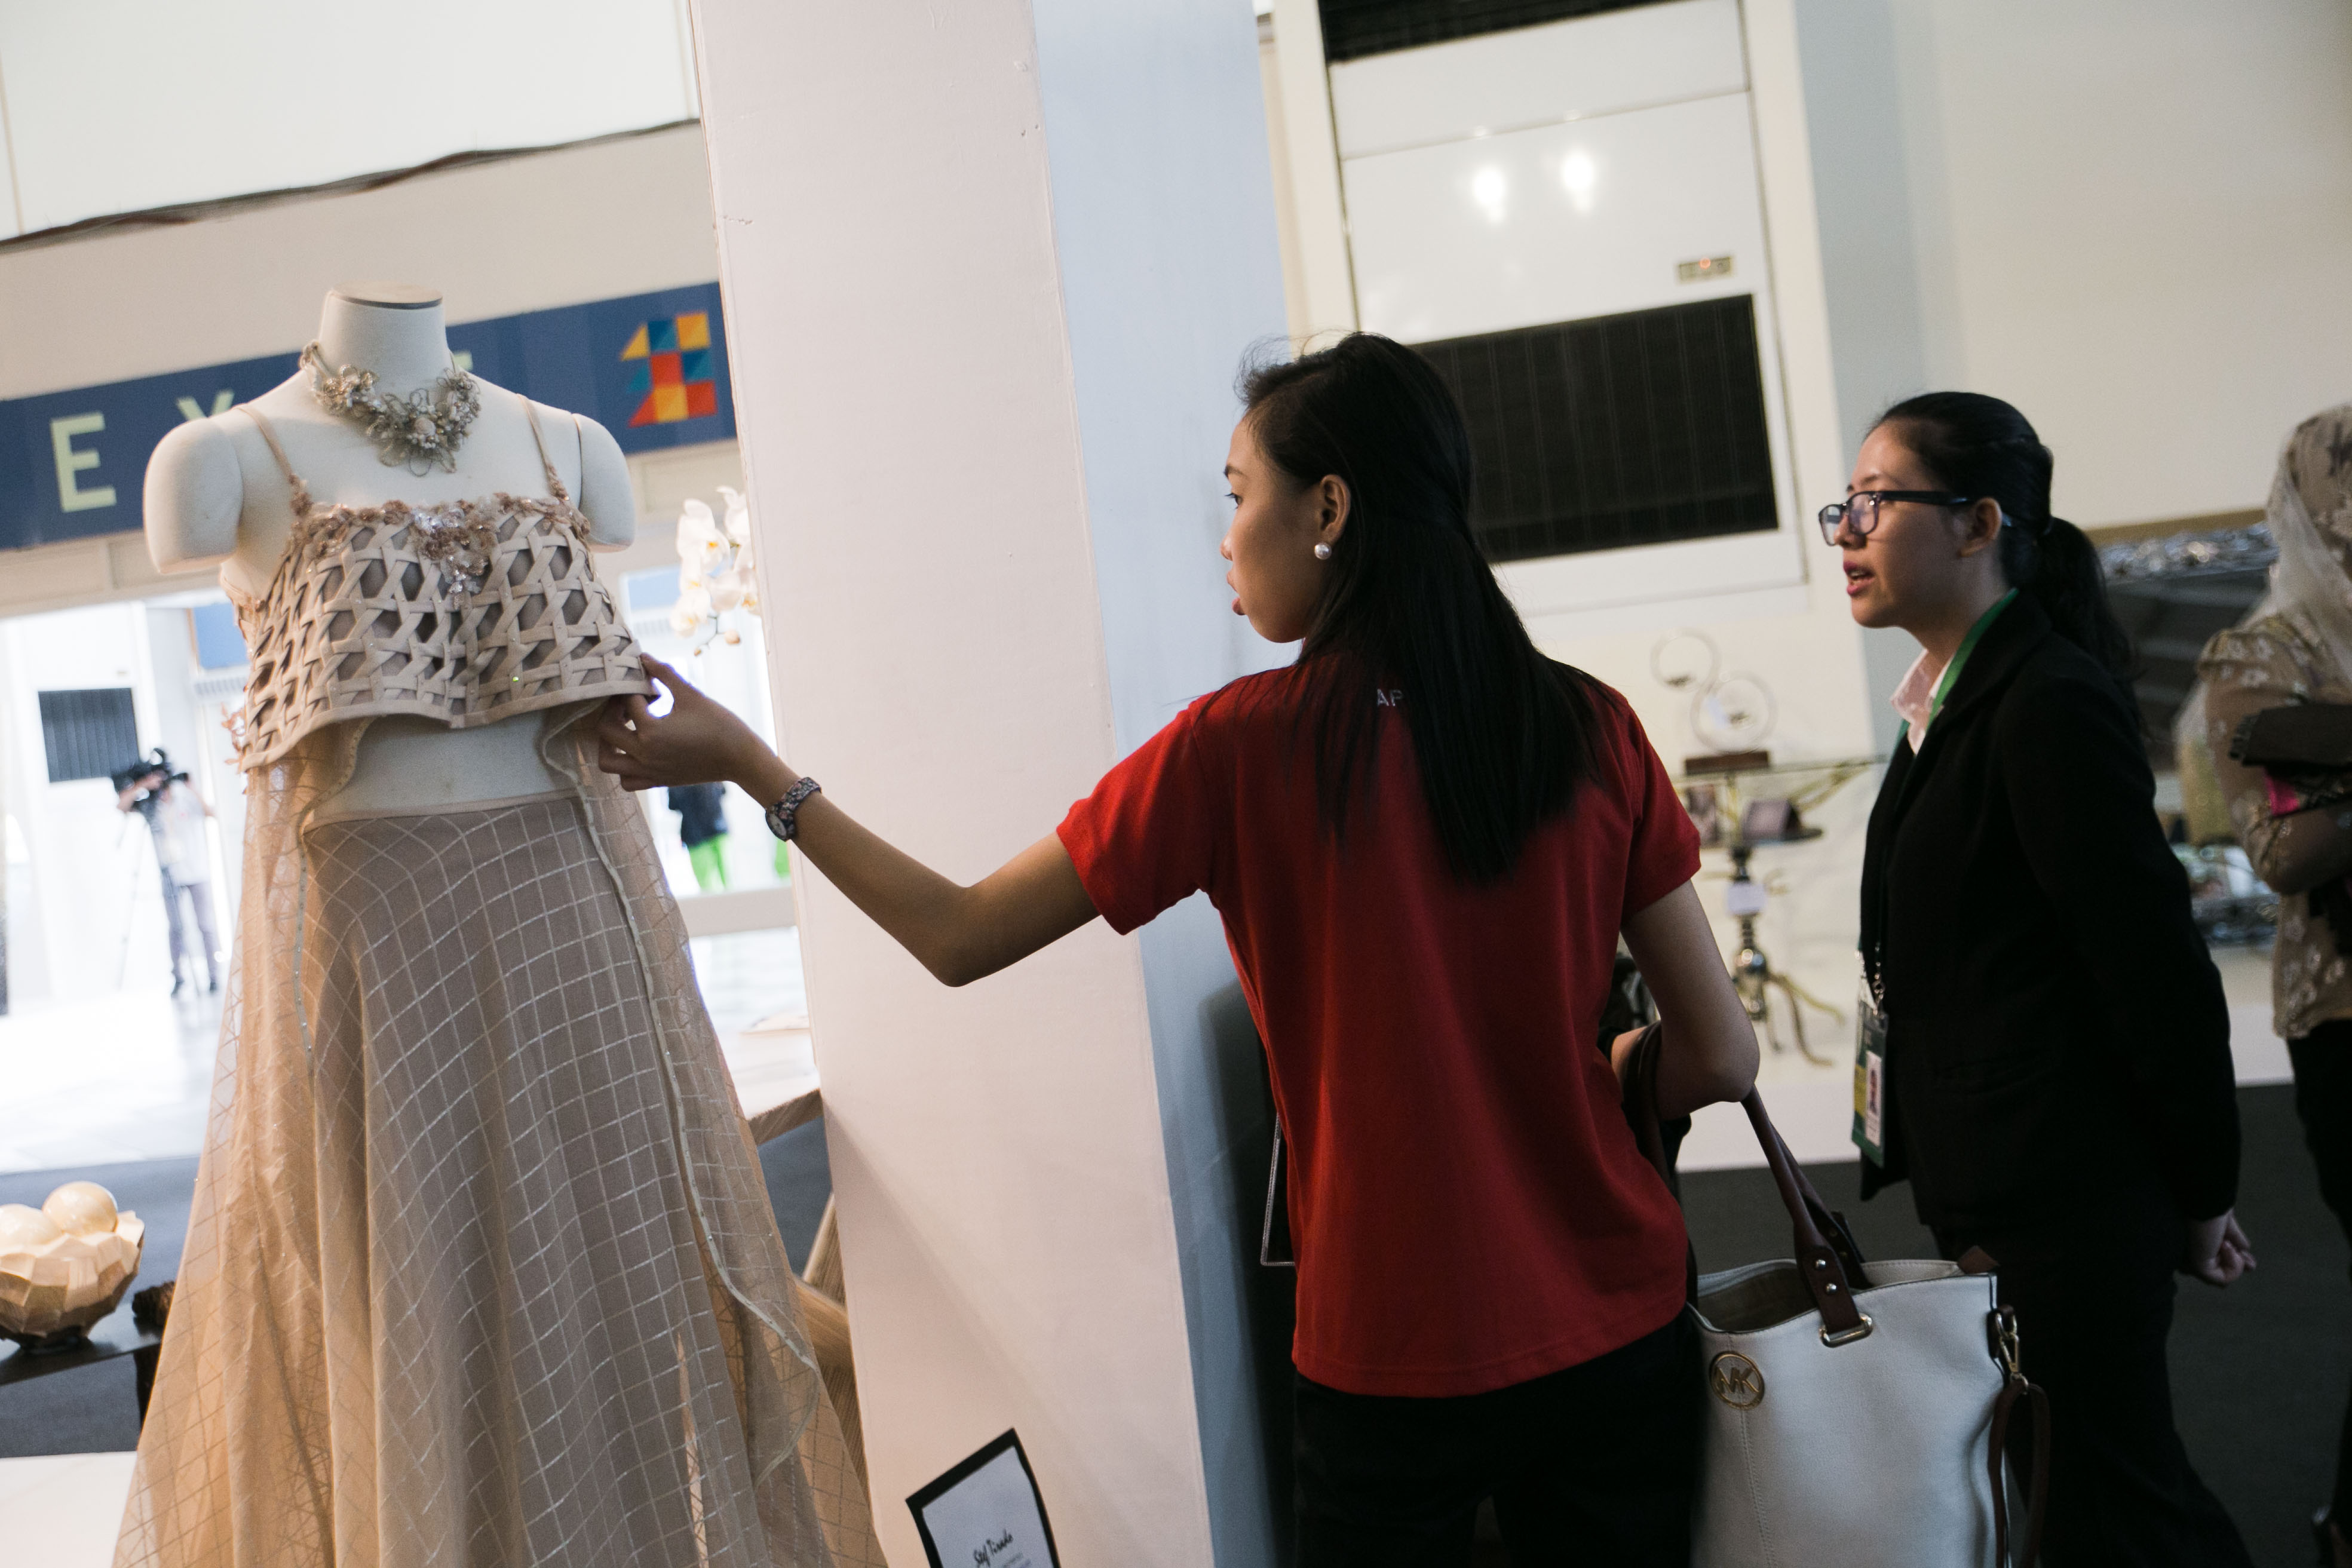 POTENTIAL BUYERS. Two women examine a gown that was exhibited by Expo Mandaue at the APEC International Media Center. Mandaue is a springboard of many businesses that hope to be and already are part of the export economy. Photo by Pat Nabong/Rappler